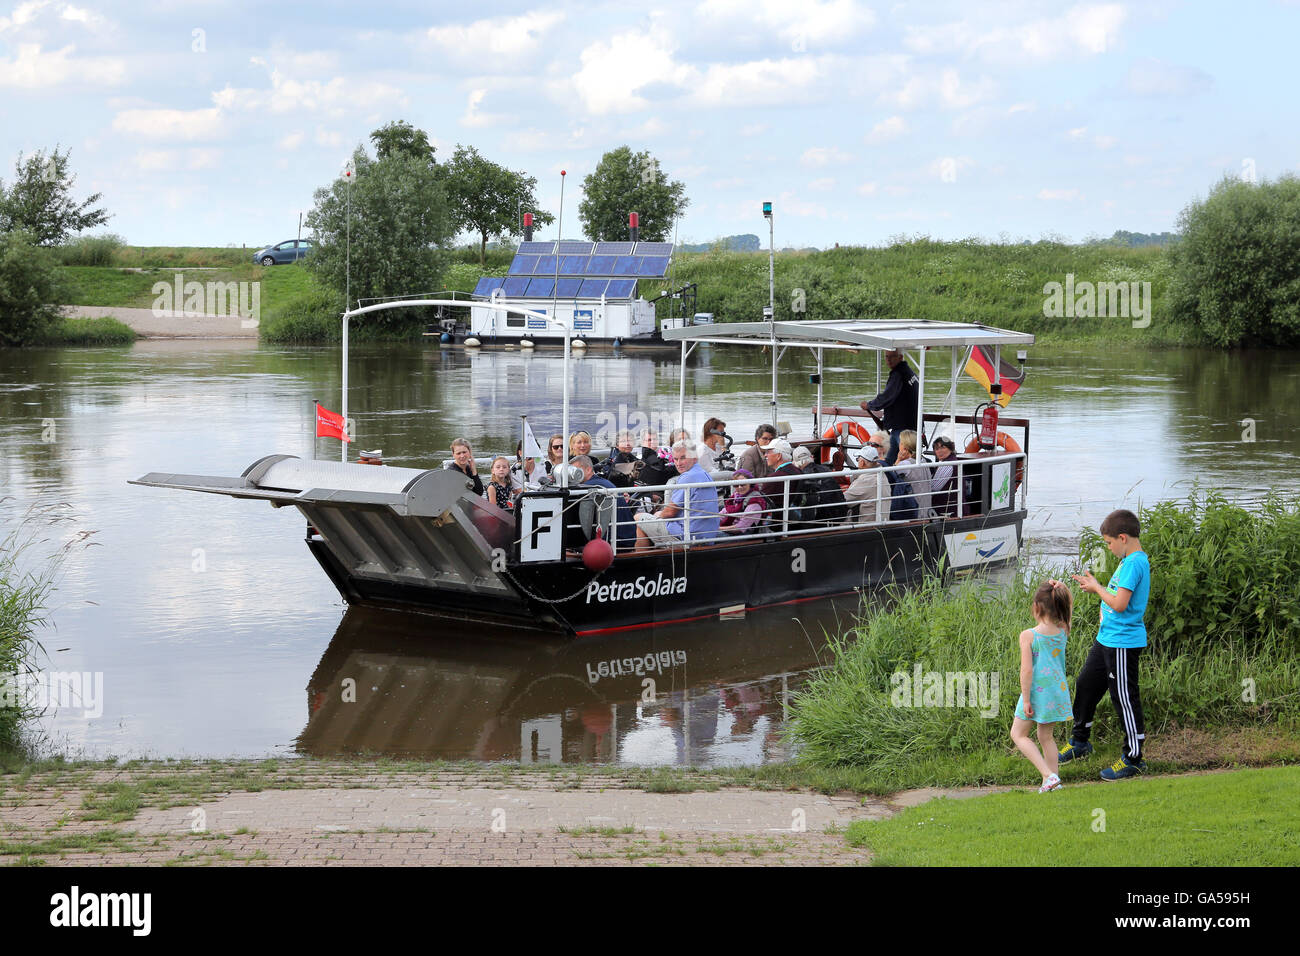 Solar powered ferry PETRA SOLARA across the river Weser near Windheim, Germany. Solar panel station to load batteries - Stock Image